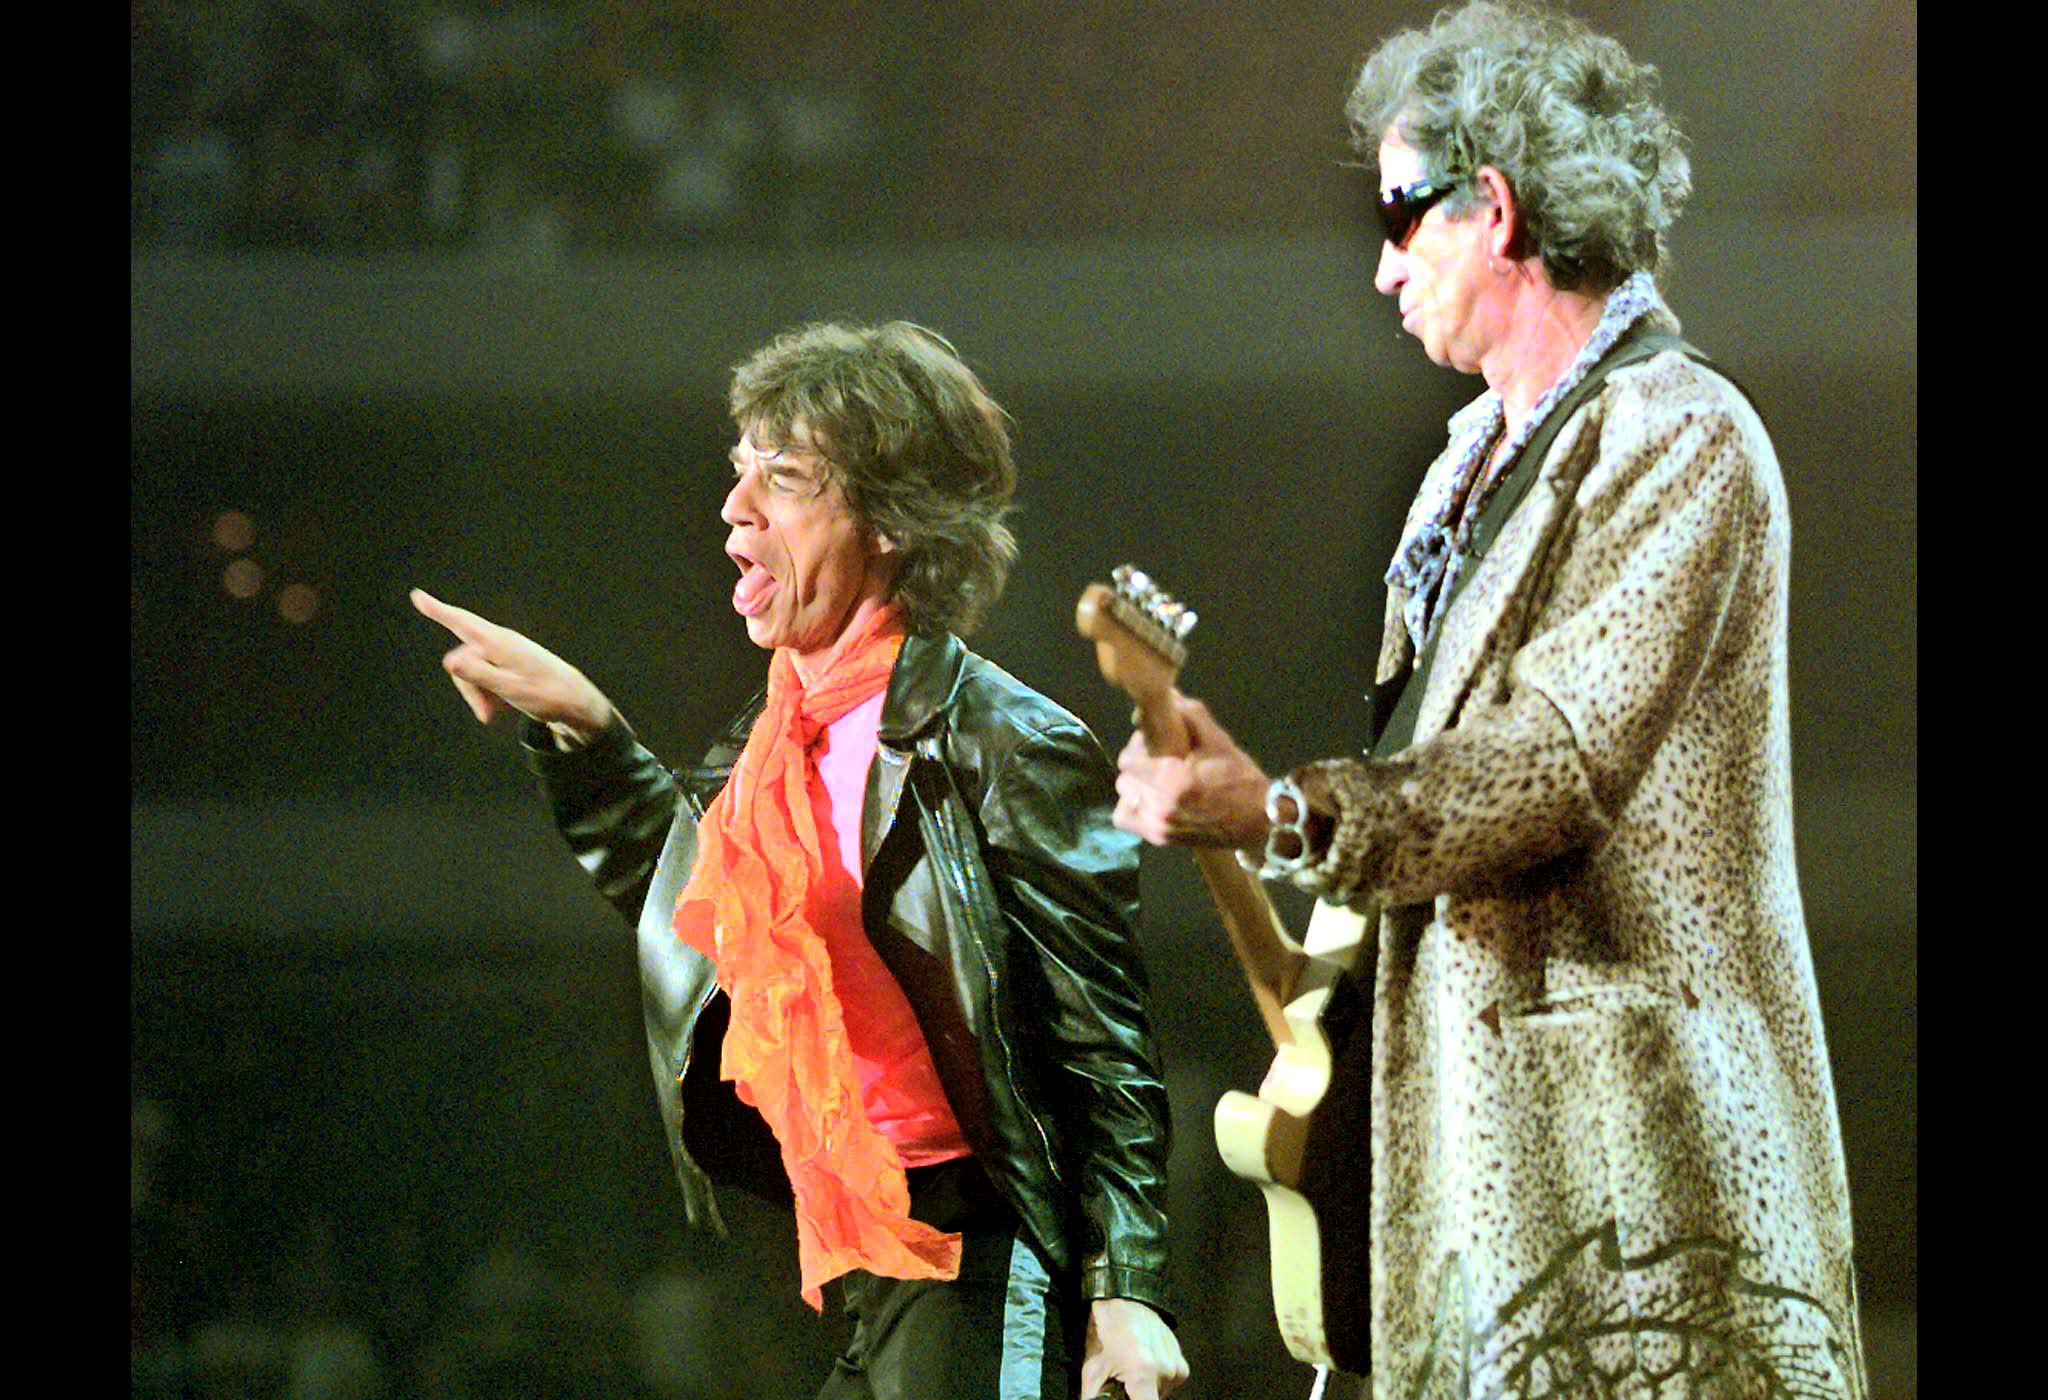 Mick Jagger 1990 Keith Richards Rolling Stones